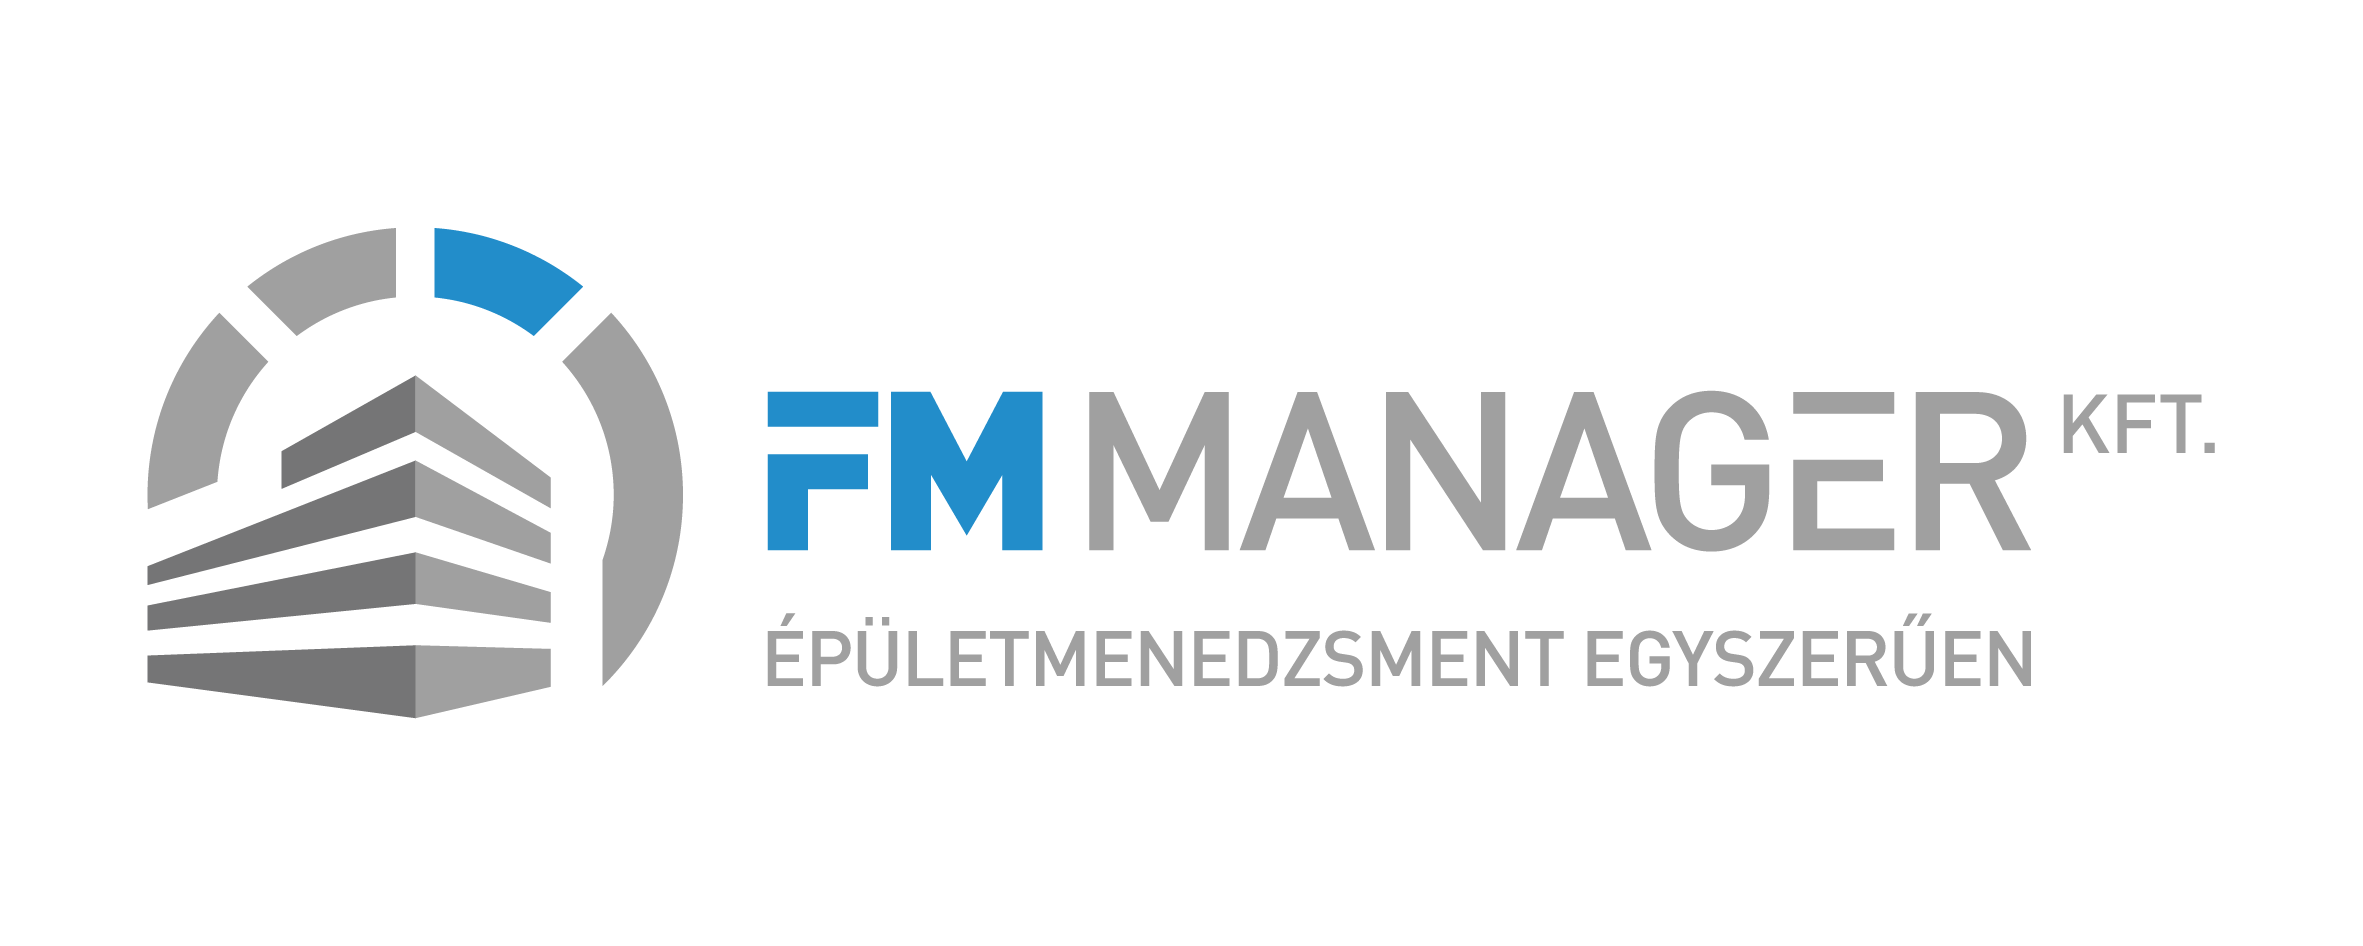 FM Manager